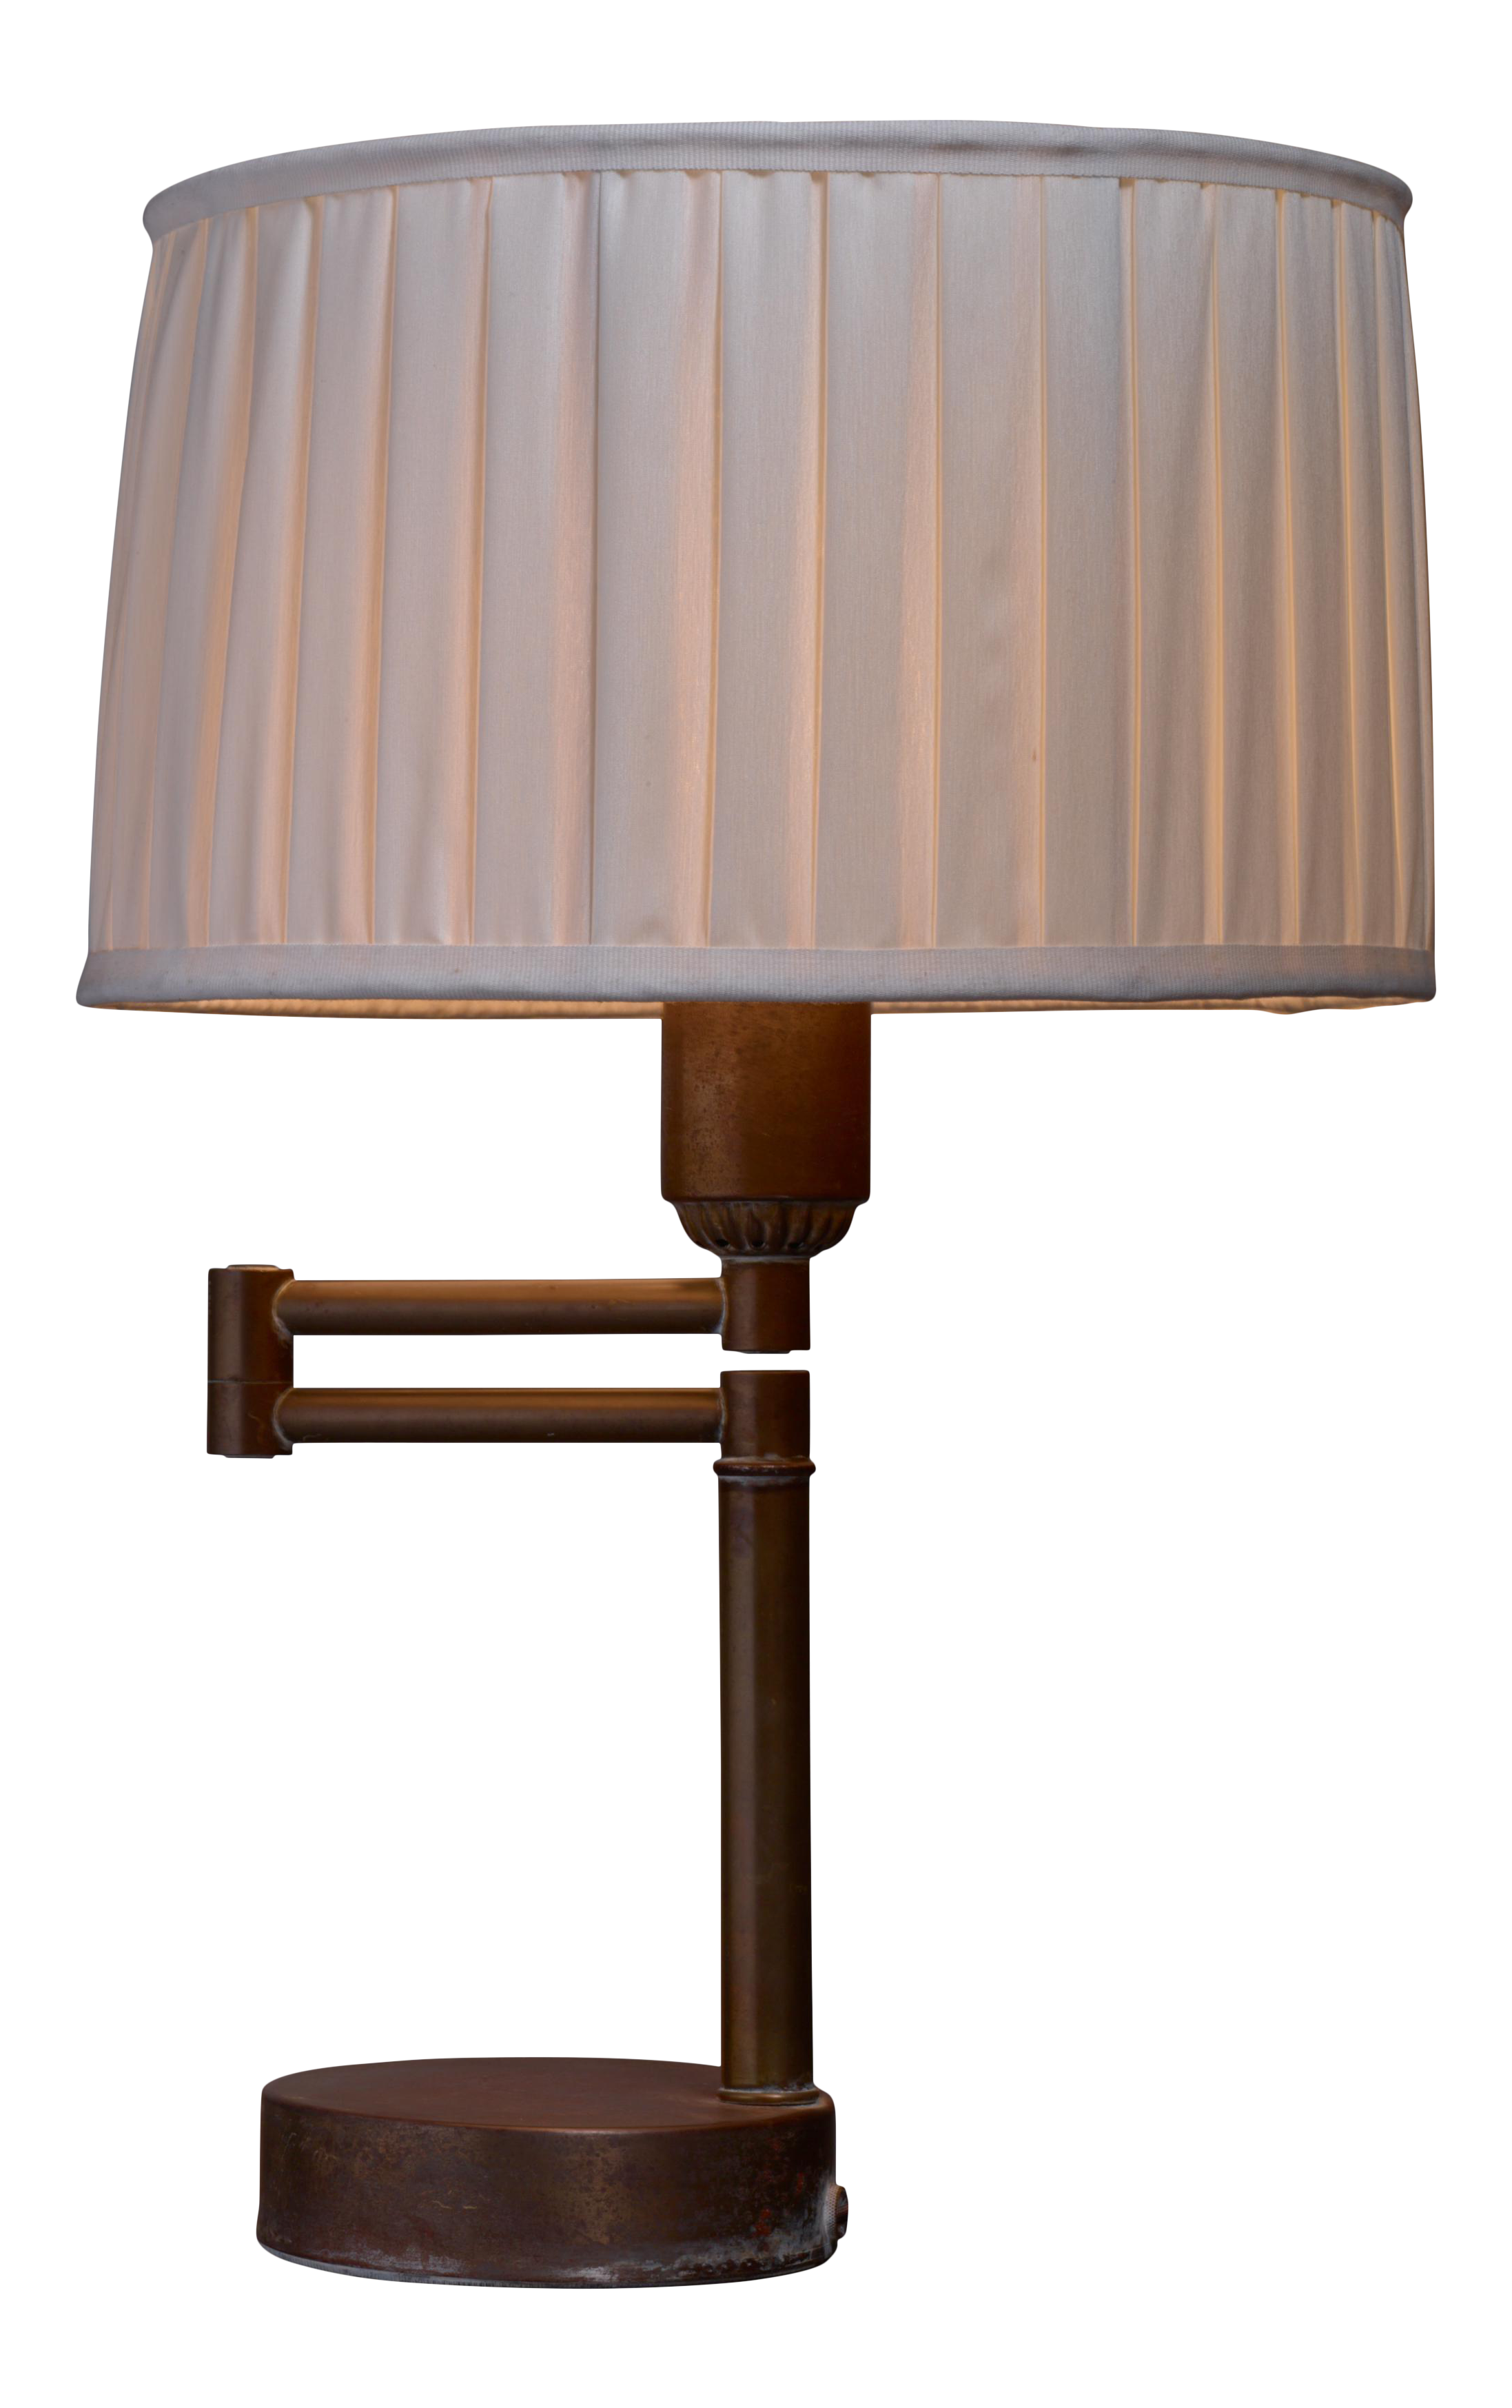 Charming Walter Von Nessen Swing Arm Table Lamp In Brass, American, 1950s   Image